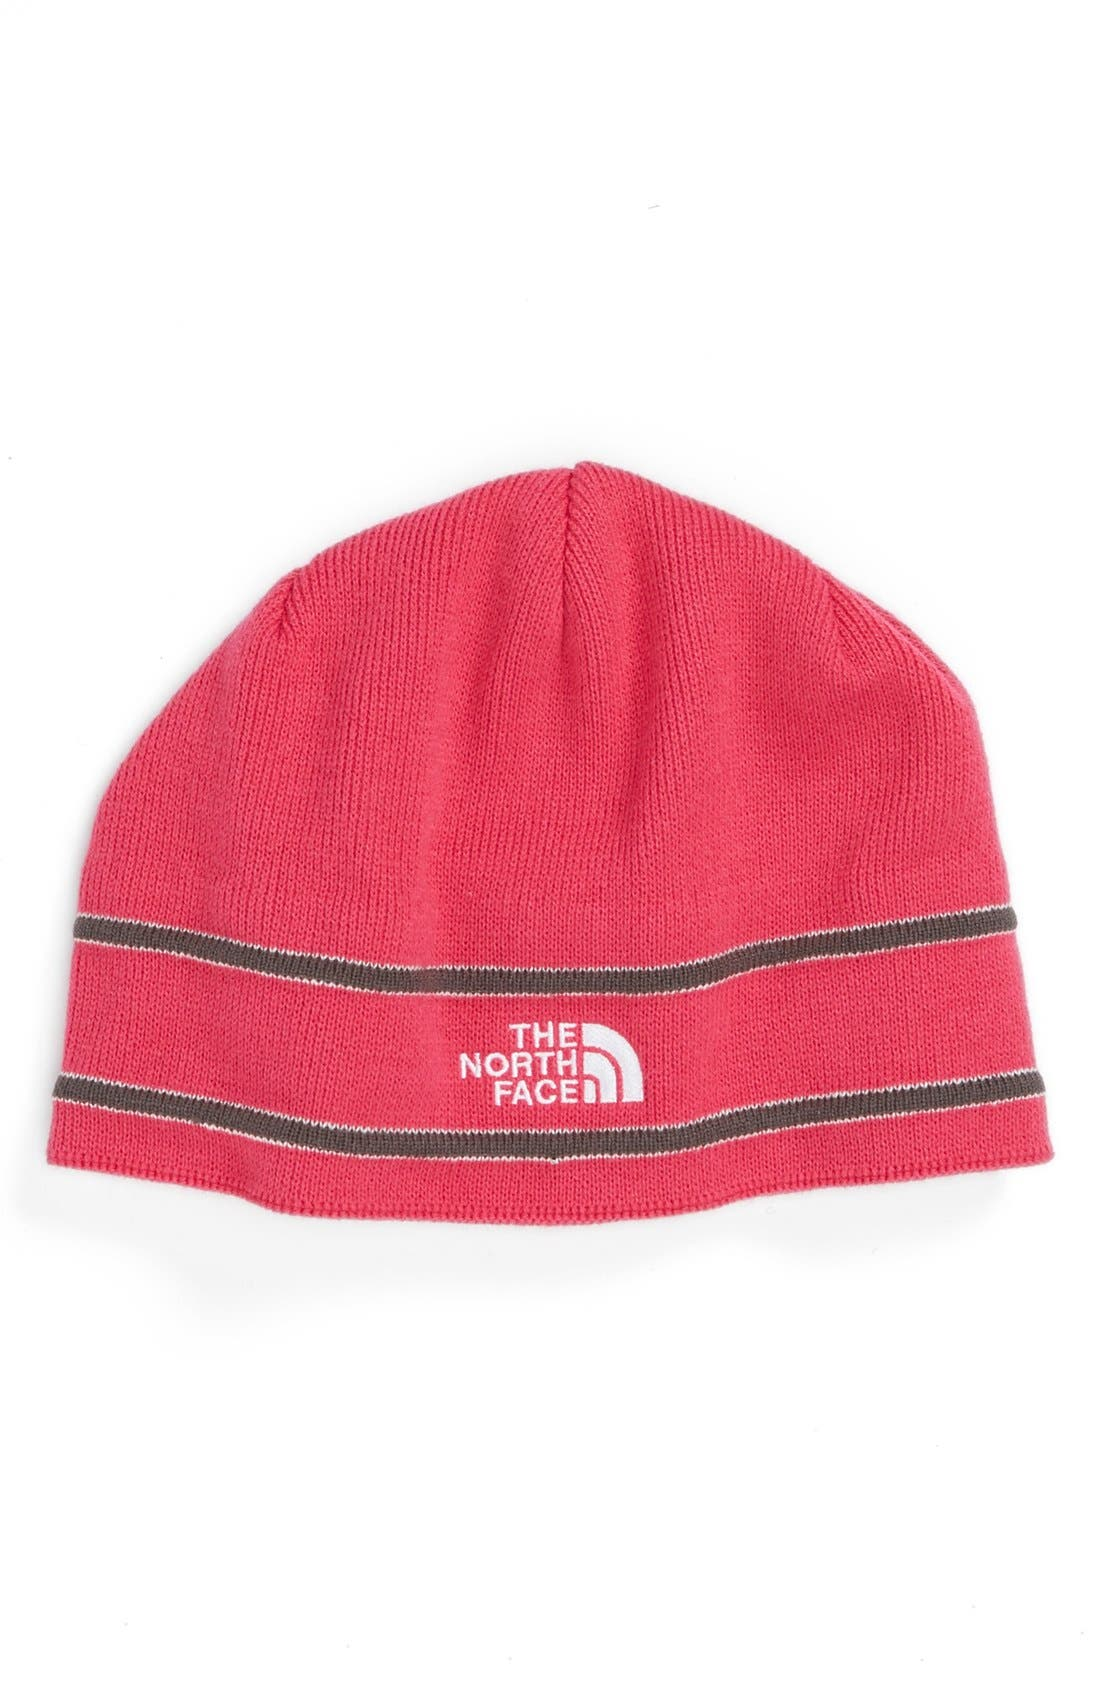 Alternate Image 1 Selected - The North Face Logo Beanie (Girls)